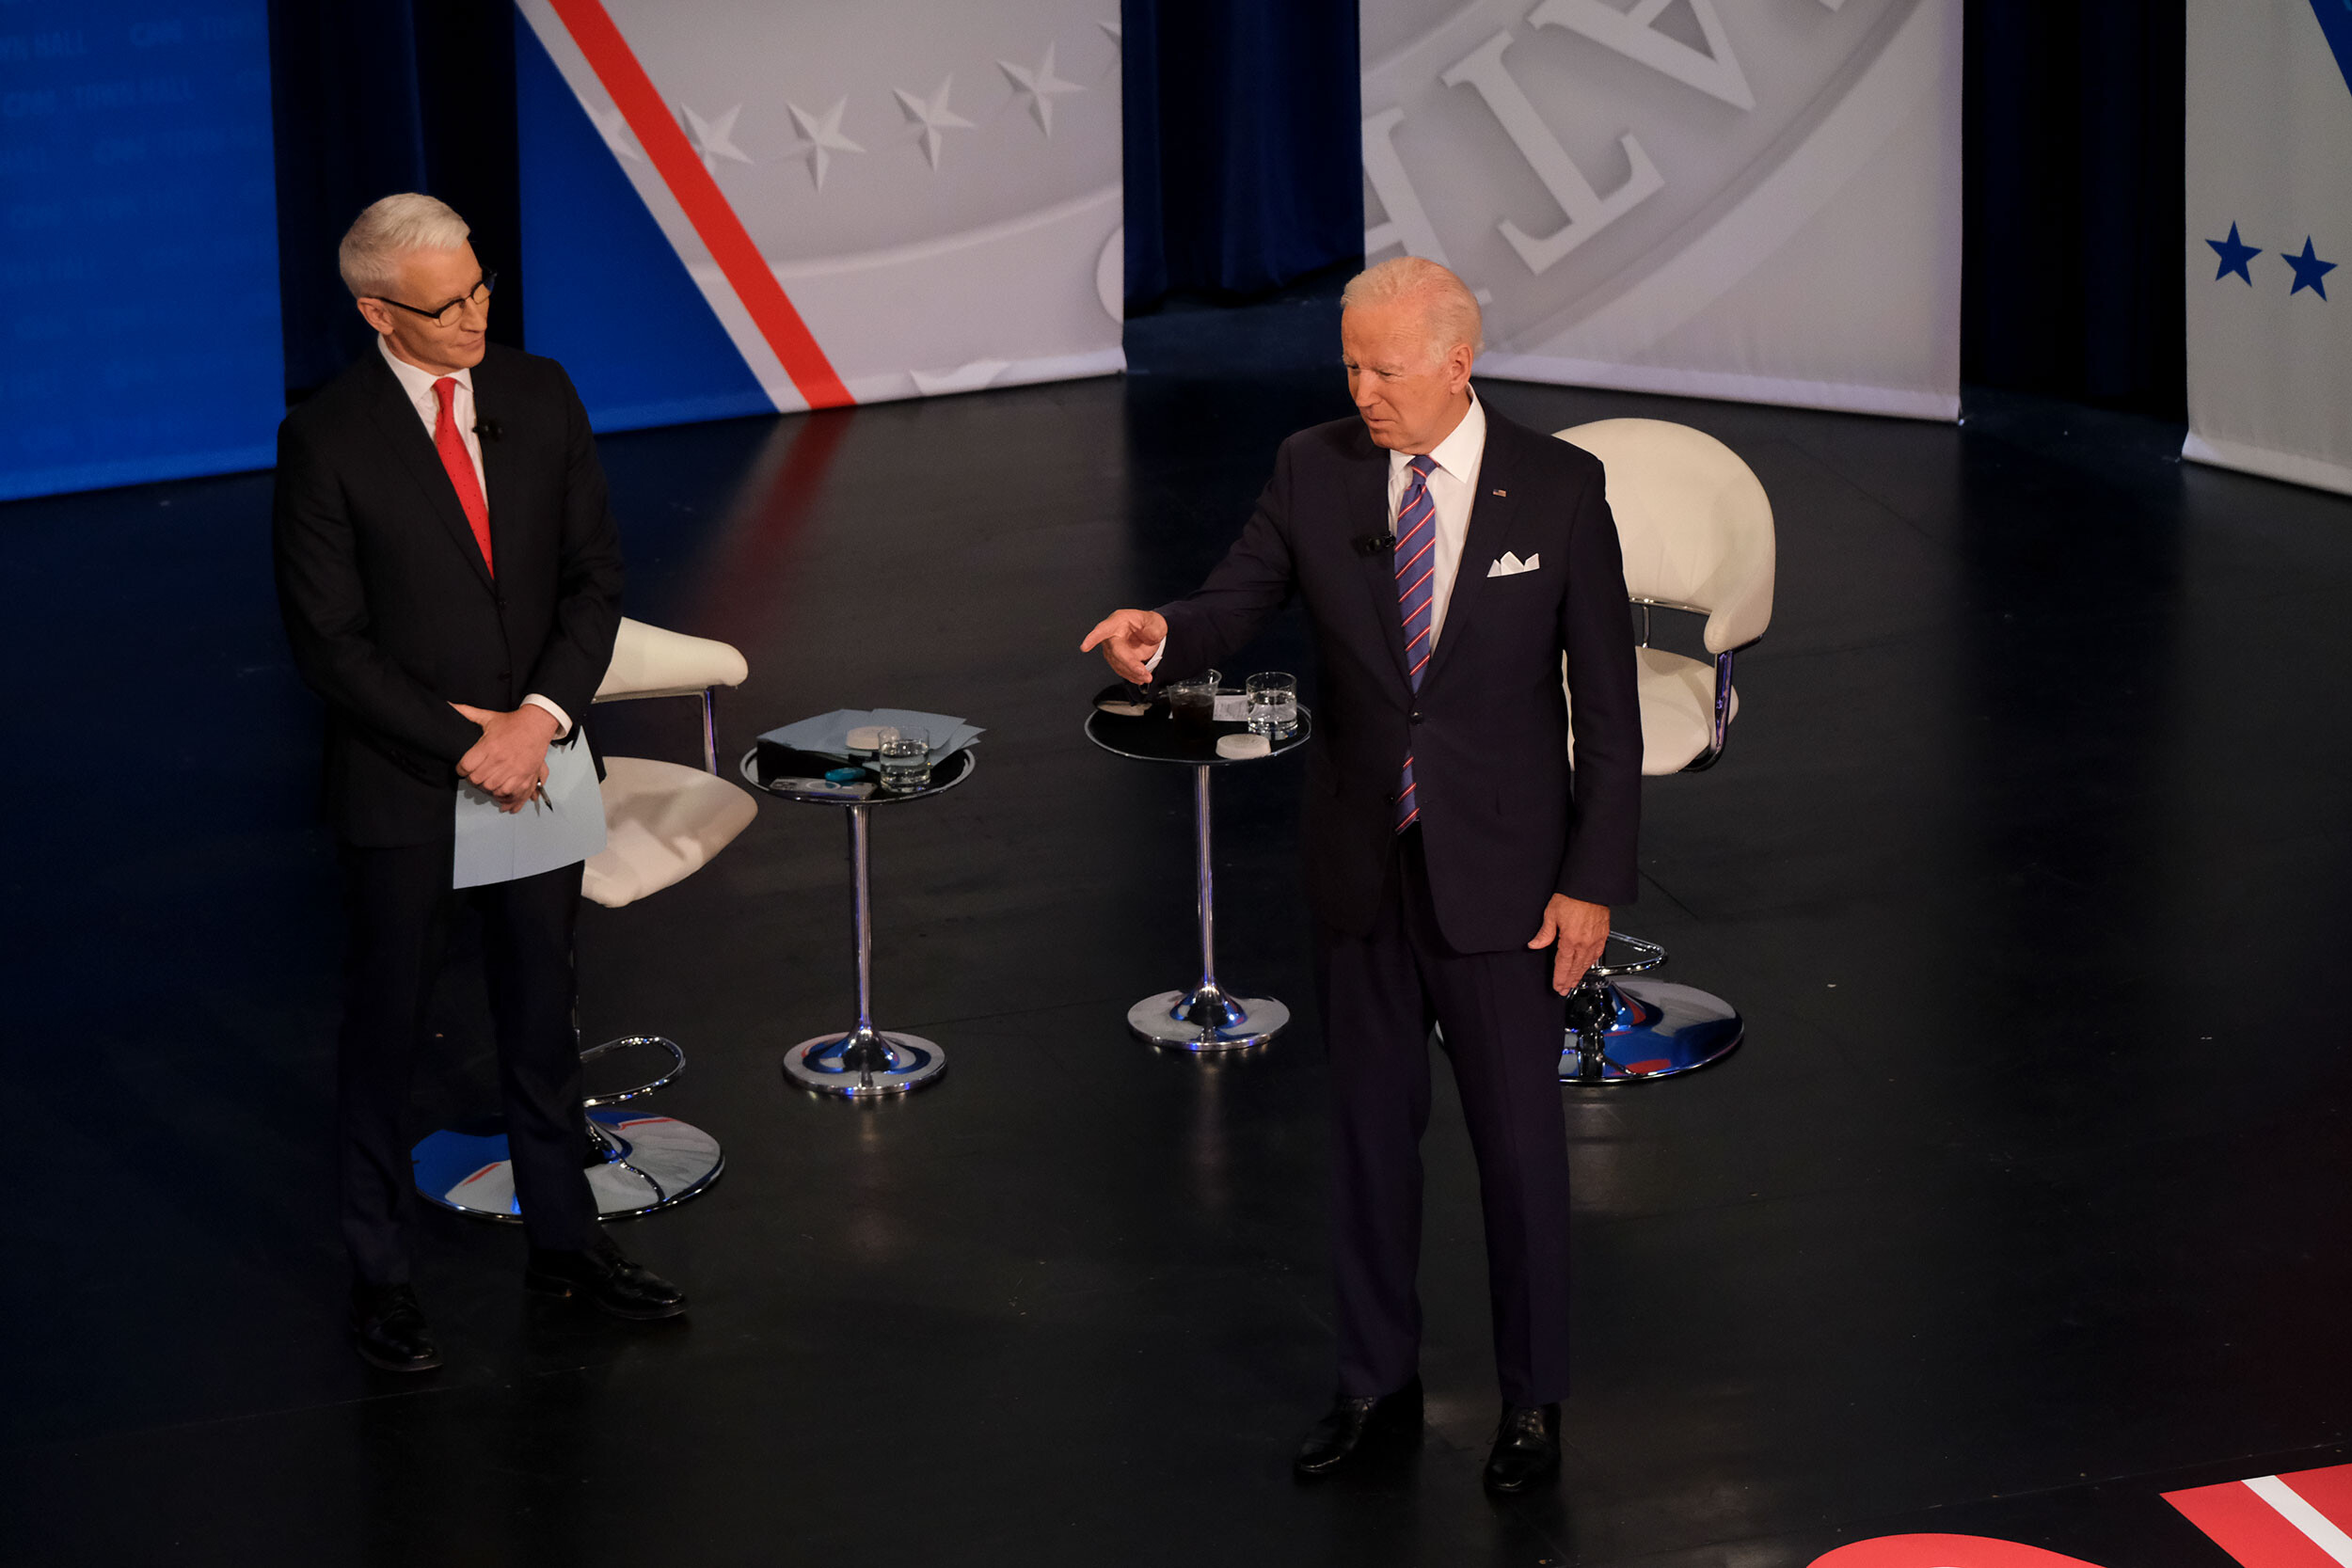 Biden says he was wrong to suggest those who defy subpoenas from January 6 committee should be prosecuted